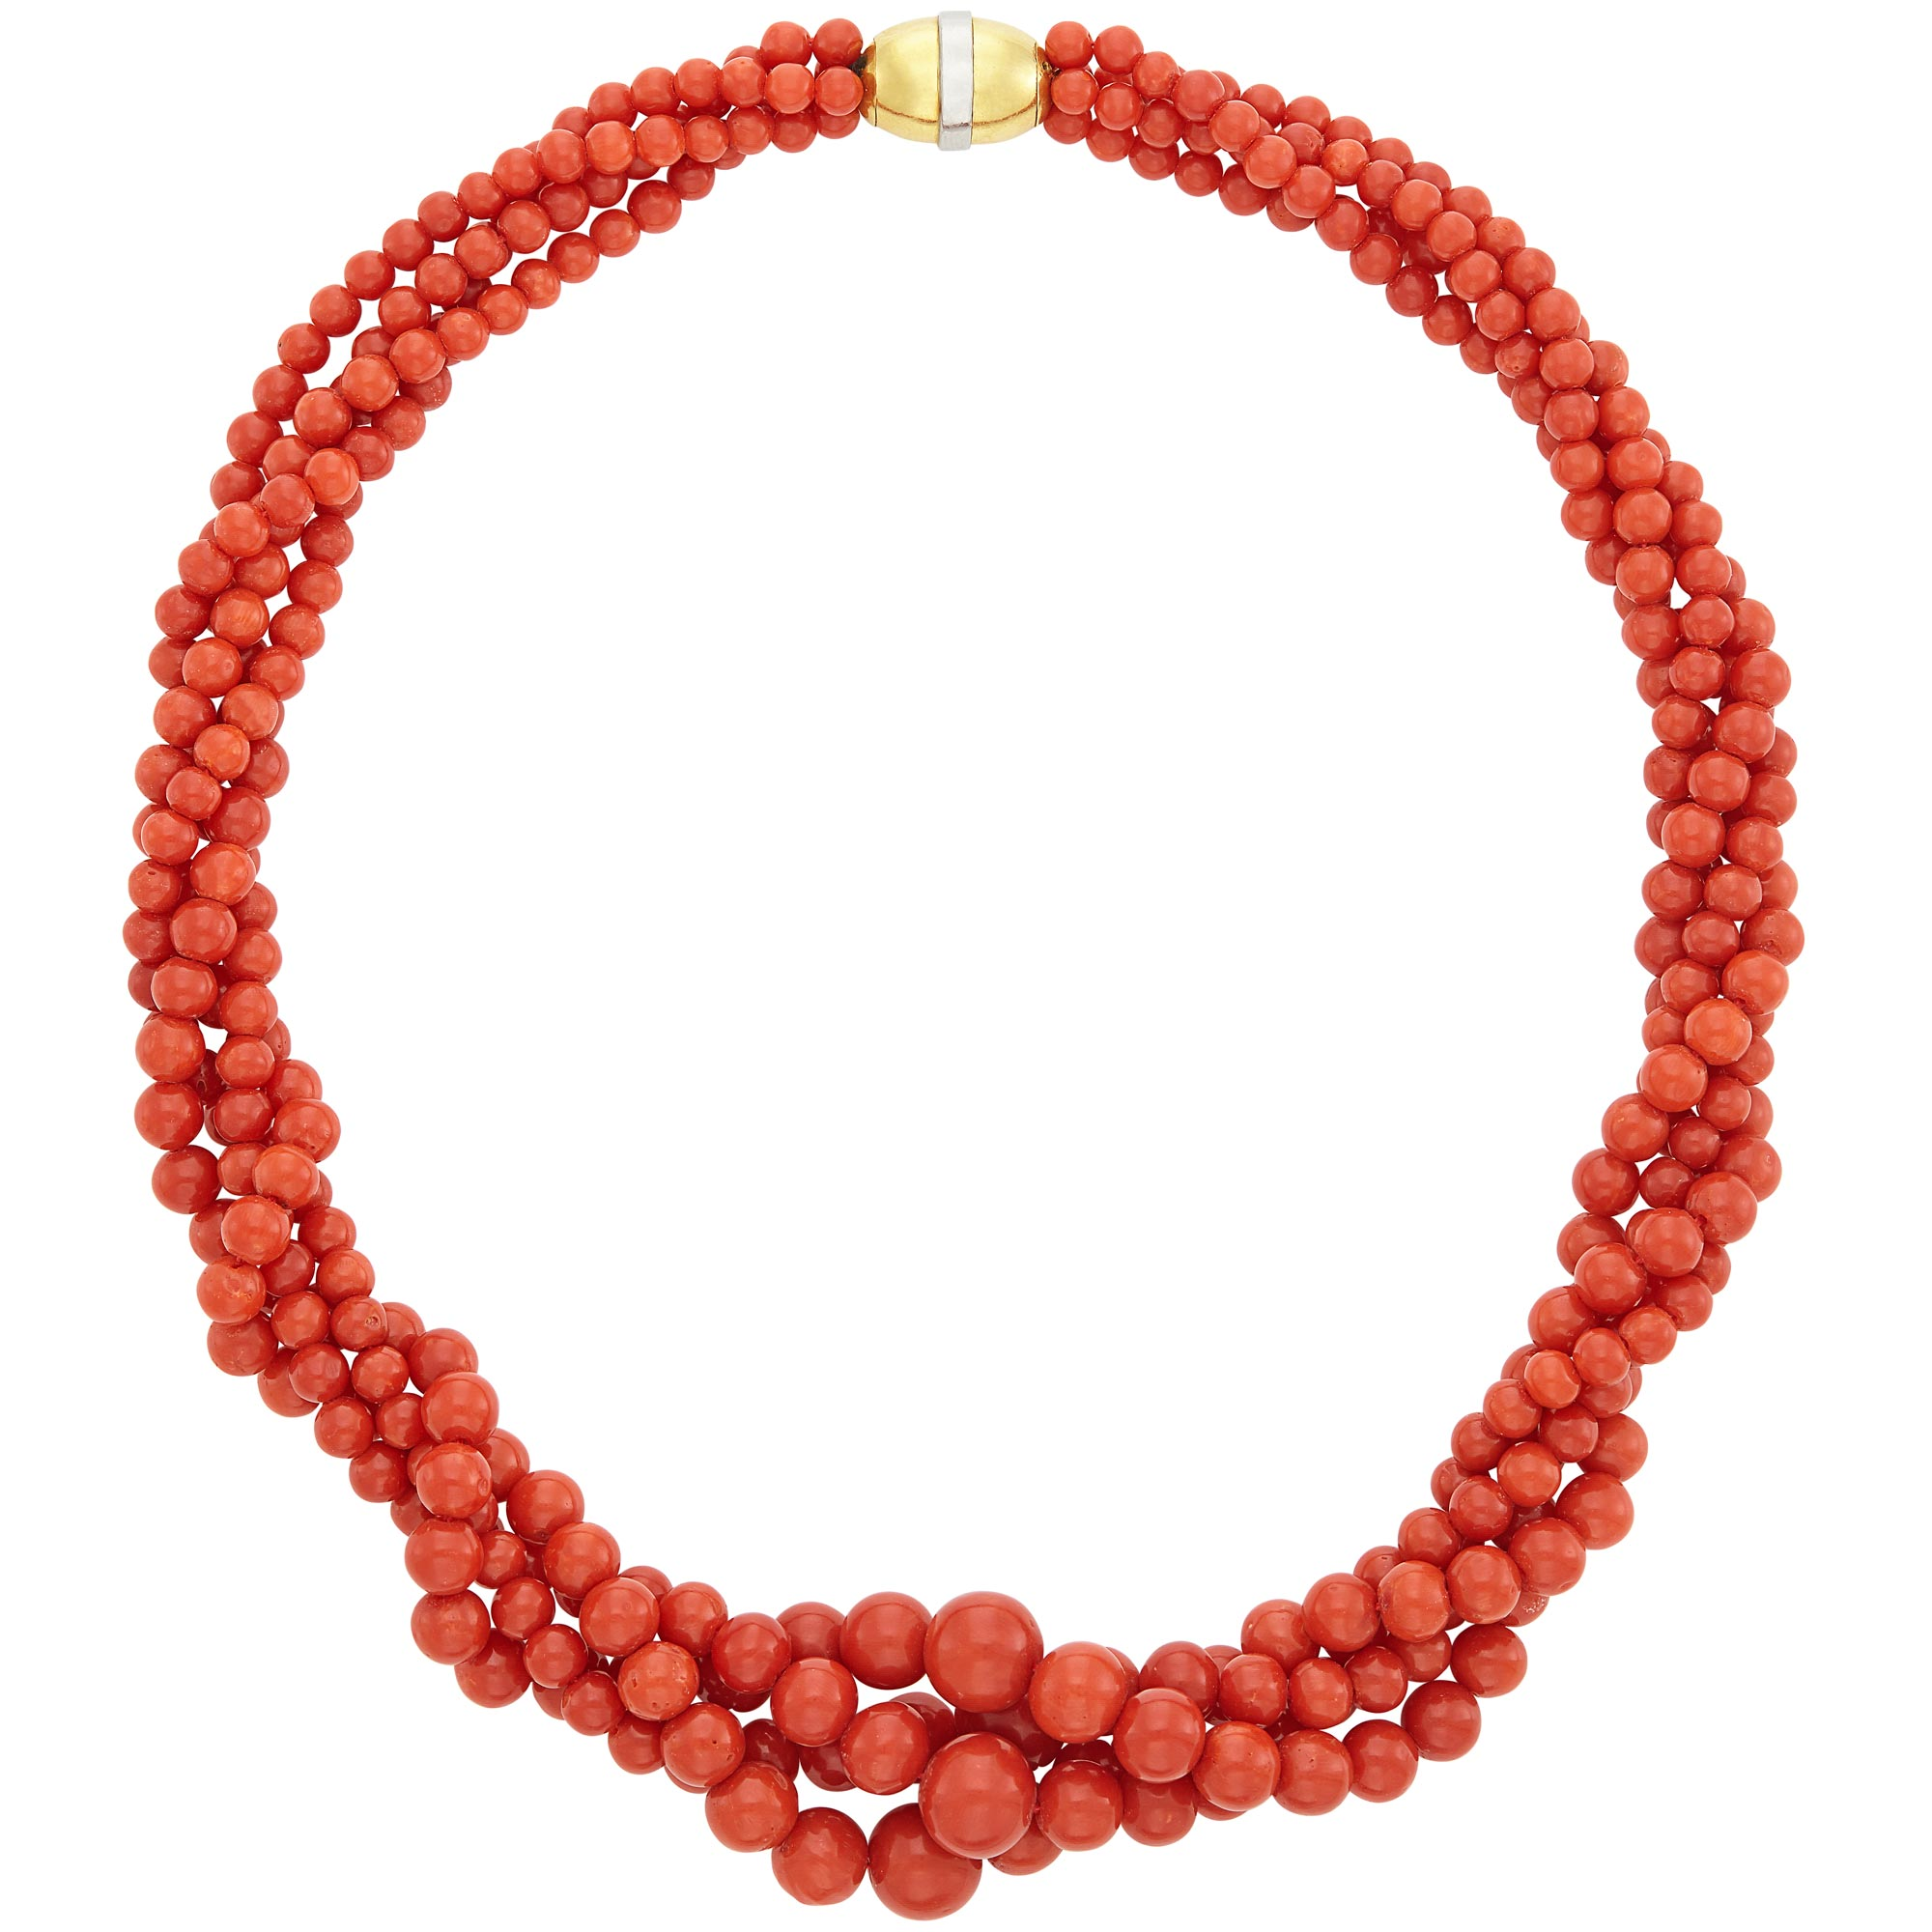 Lot image - Four Strand Coral Bead Torsade Necklace with Two-Color Gold Clasp, by Linda Lee Johnson